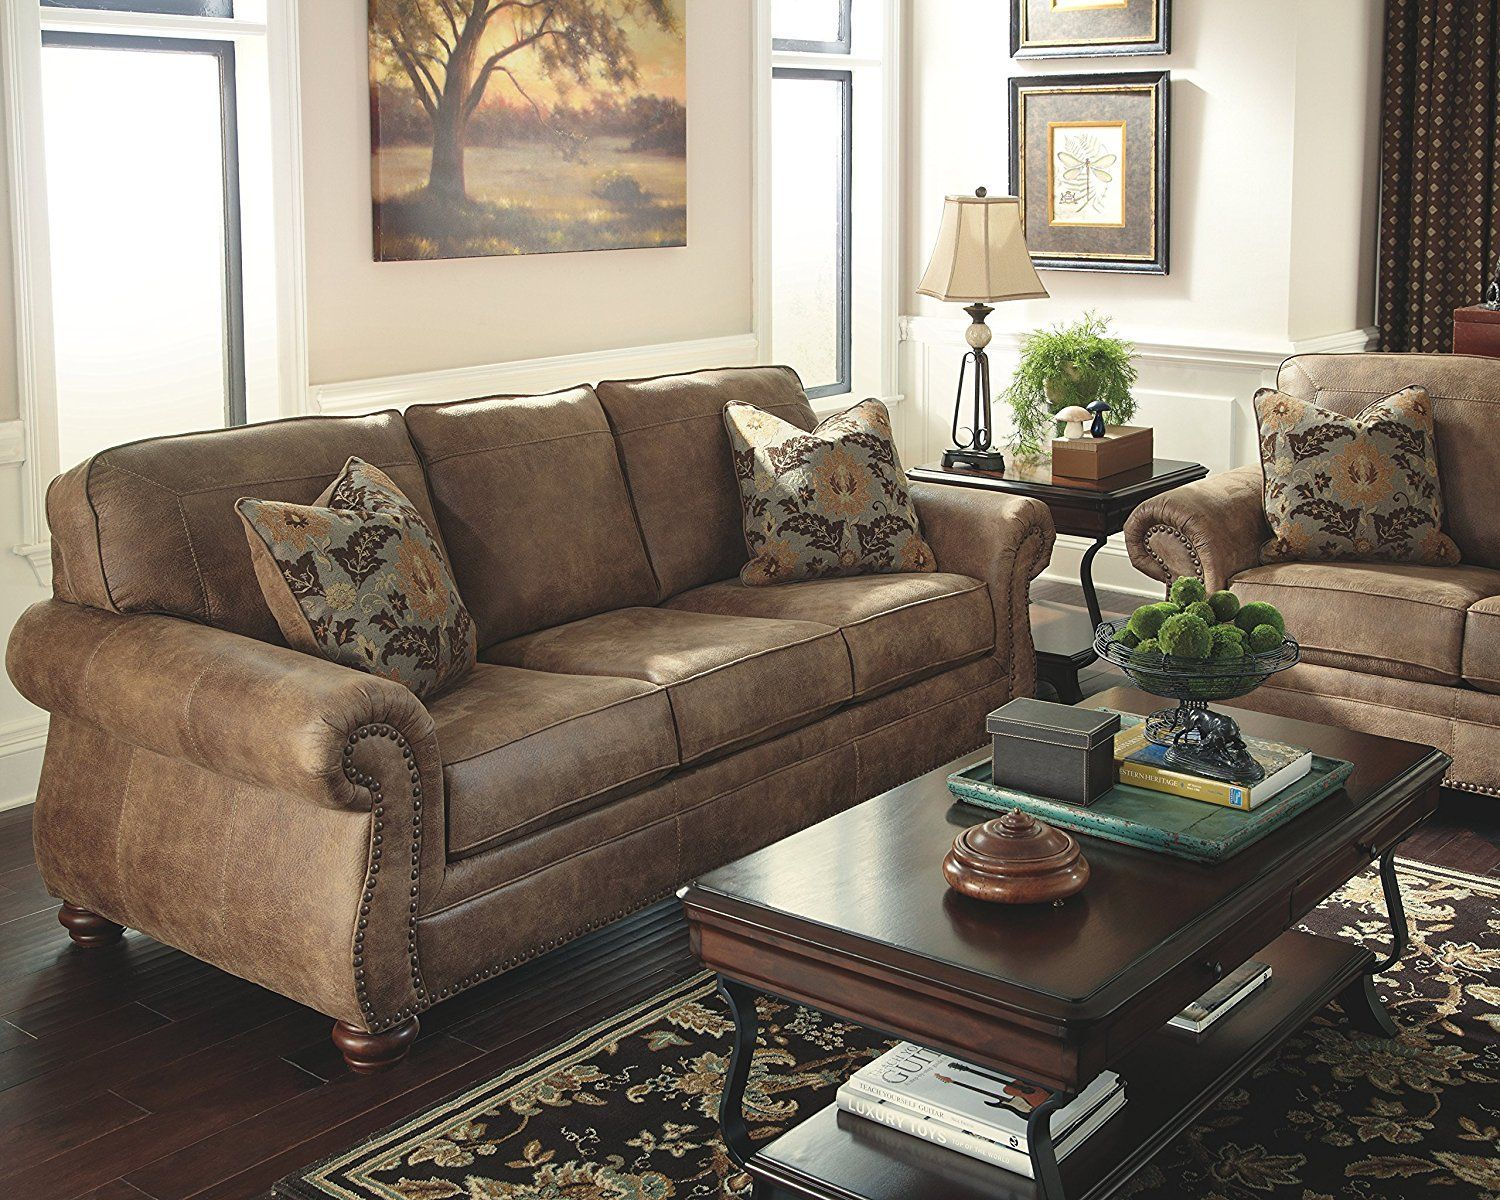 Best farmhouse sofas see 100 toprated rustic sofas and